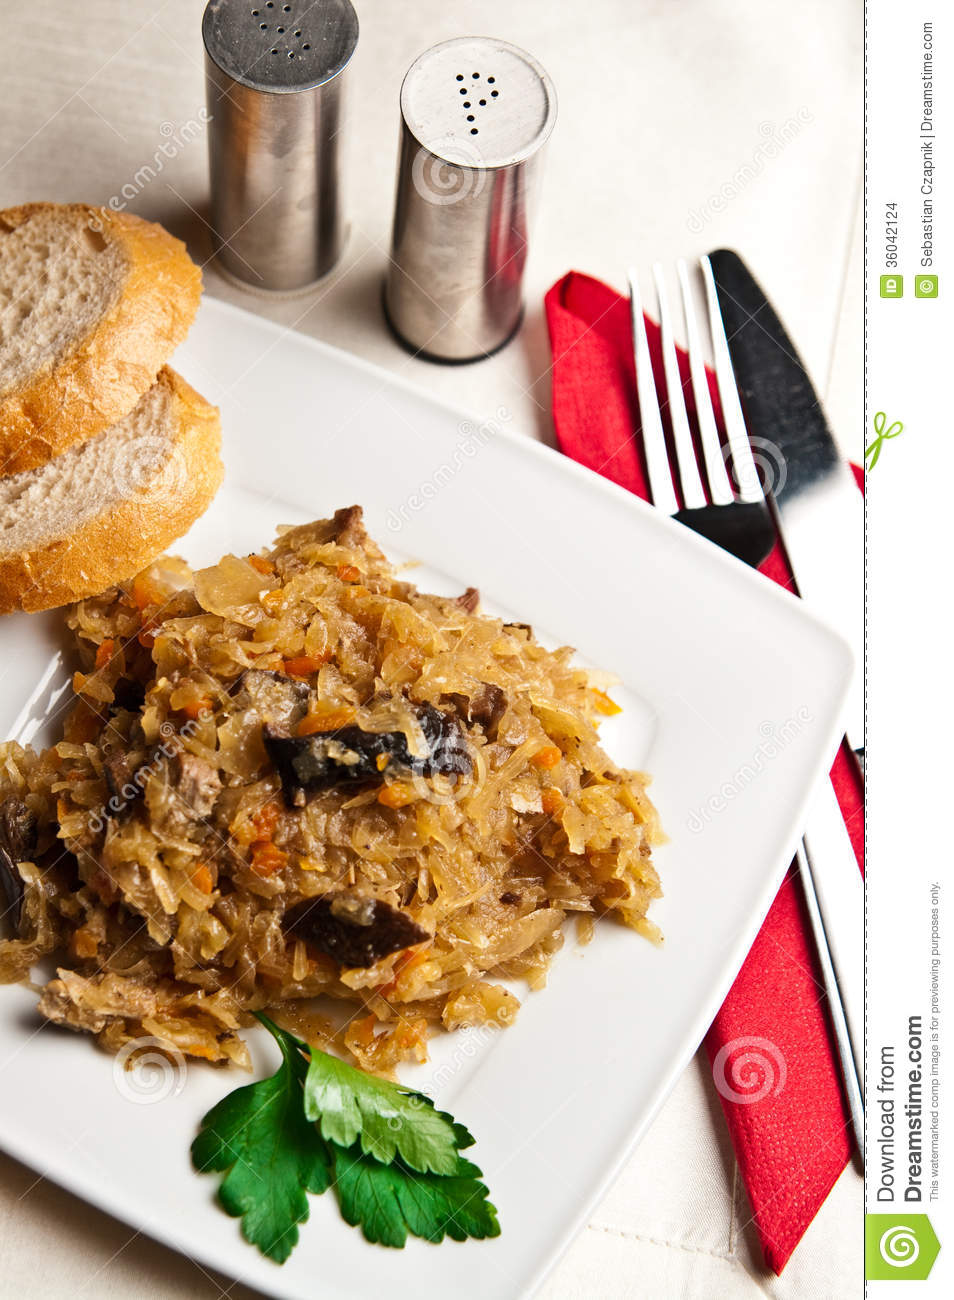 Bigos polish cuisine of cabbage food stock images for Authentic polish cuisine